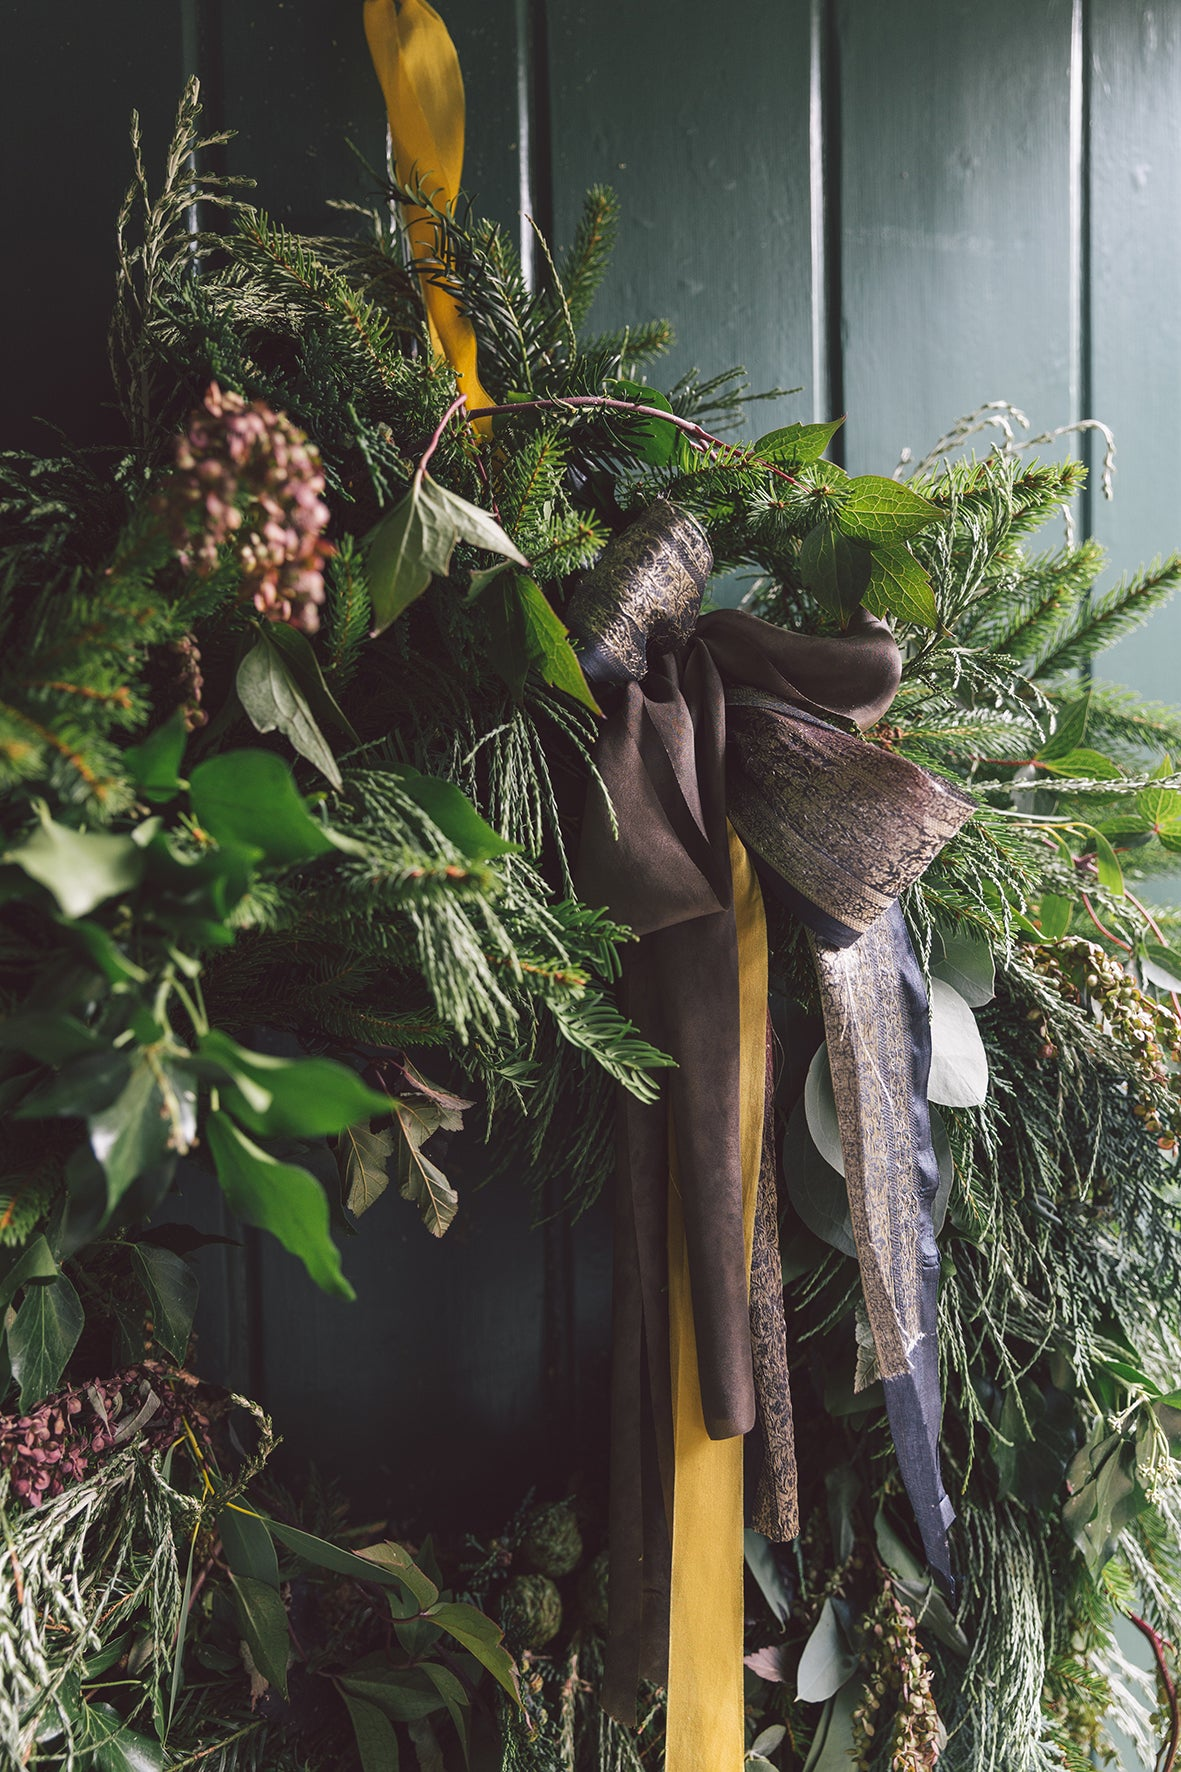 LUXURY FOLIAGE WREATH WORKSHOP - SUNDAY 8TH DECEMBER 2019 - 3pm- 5.30pm